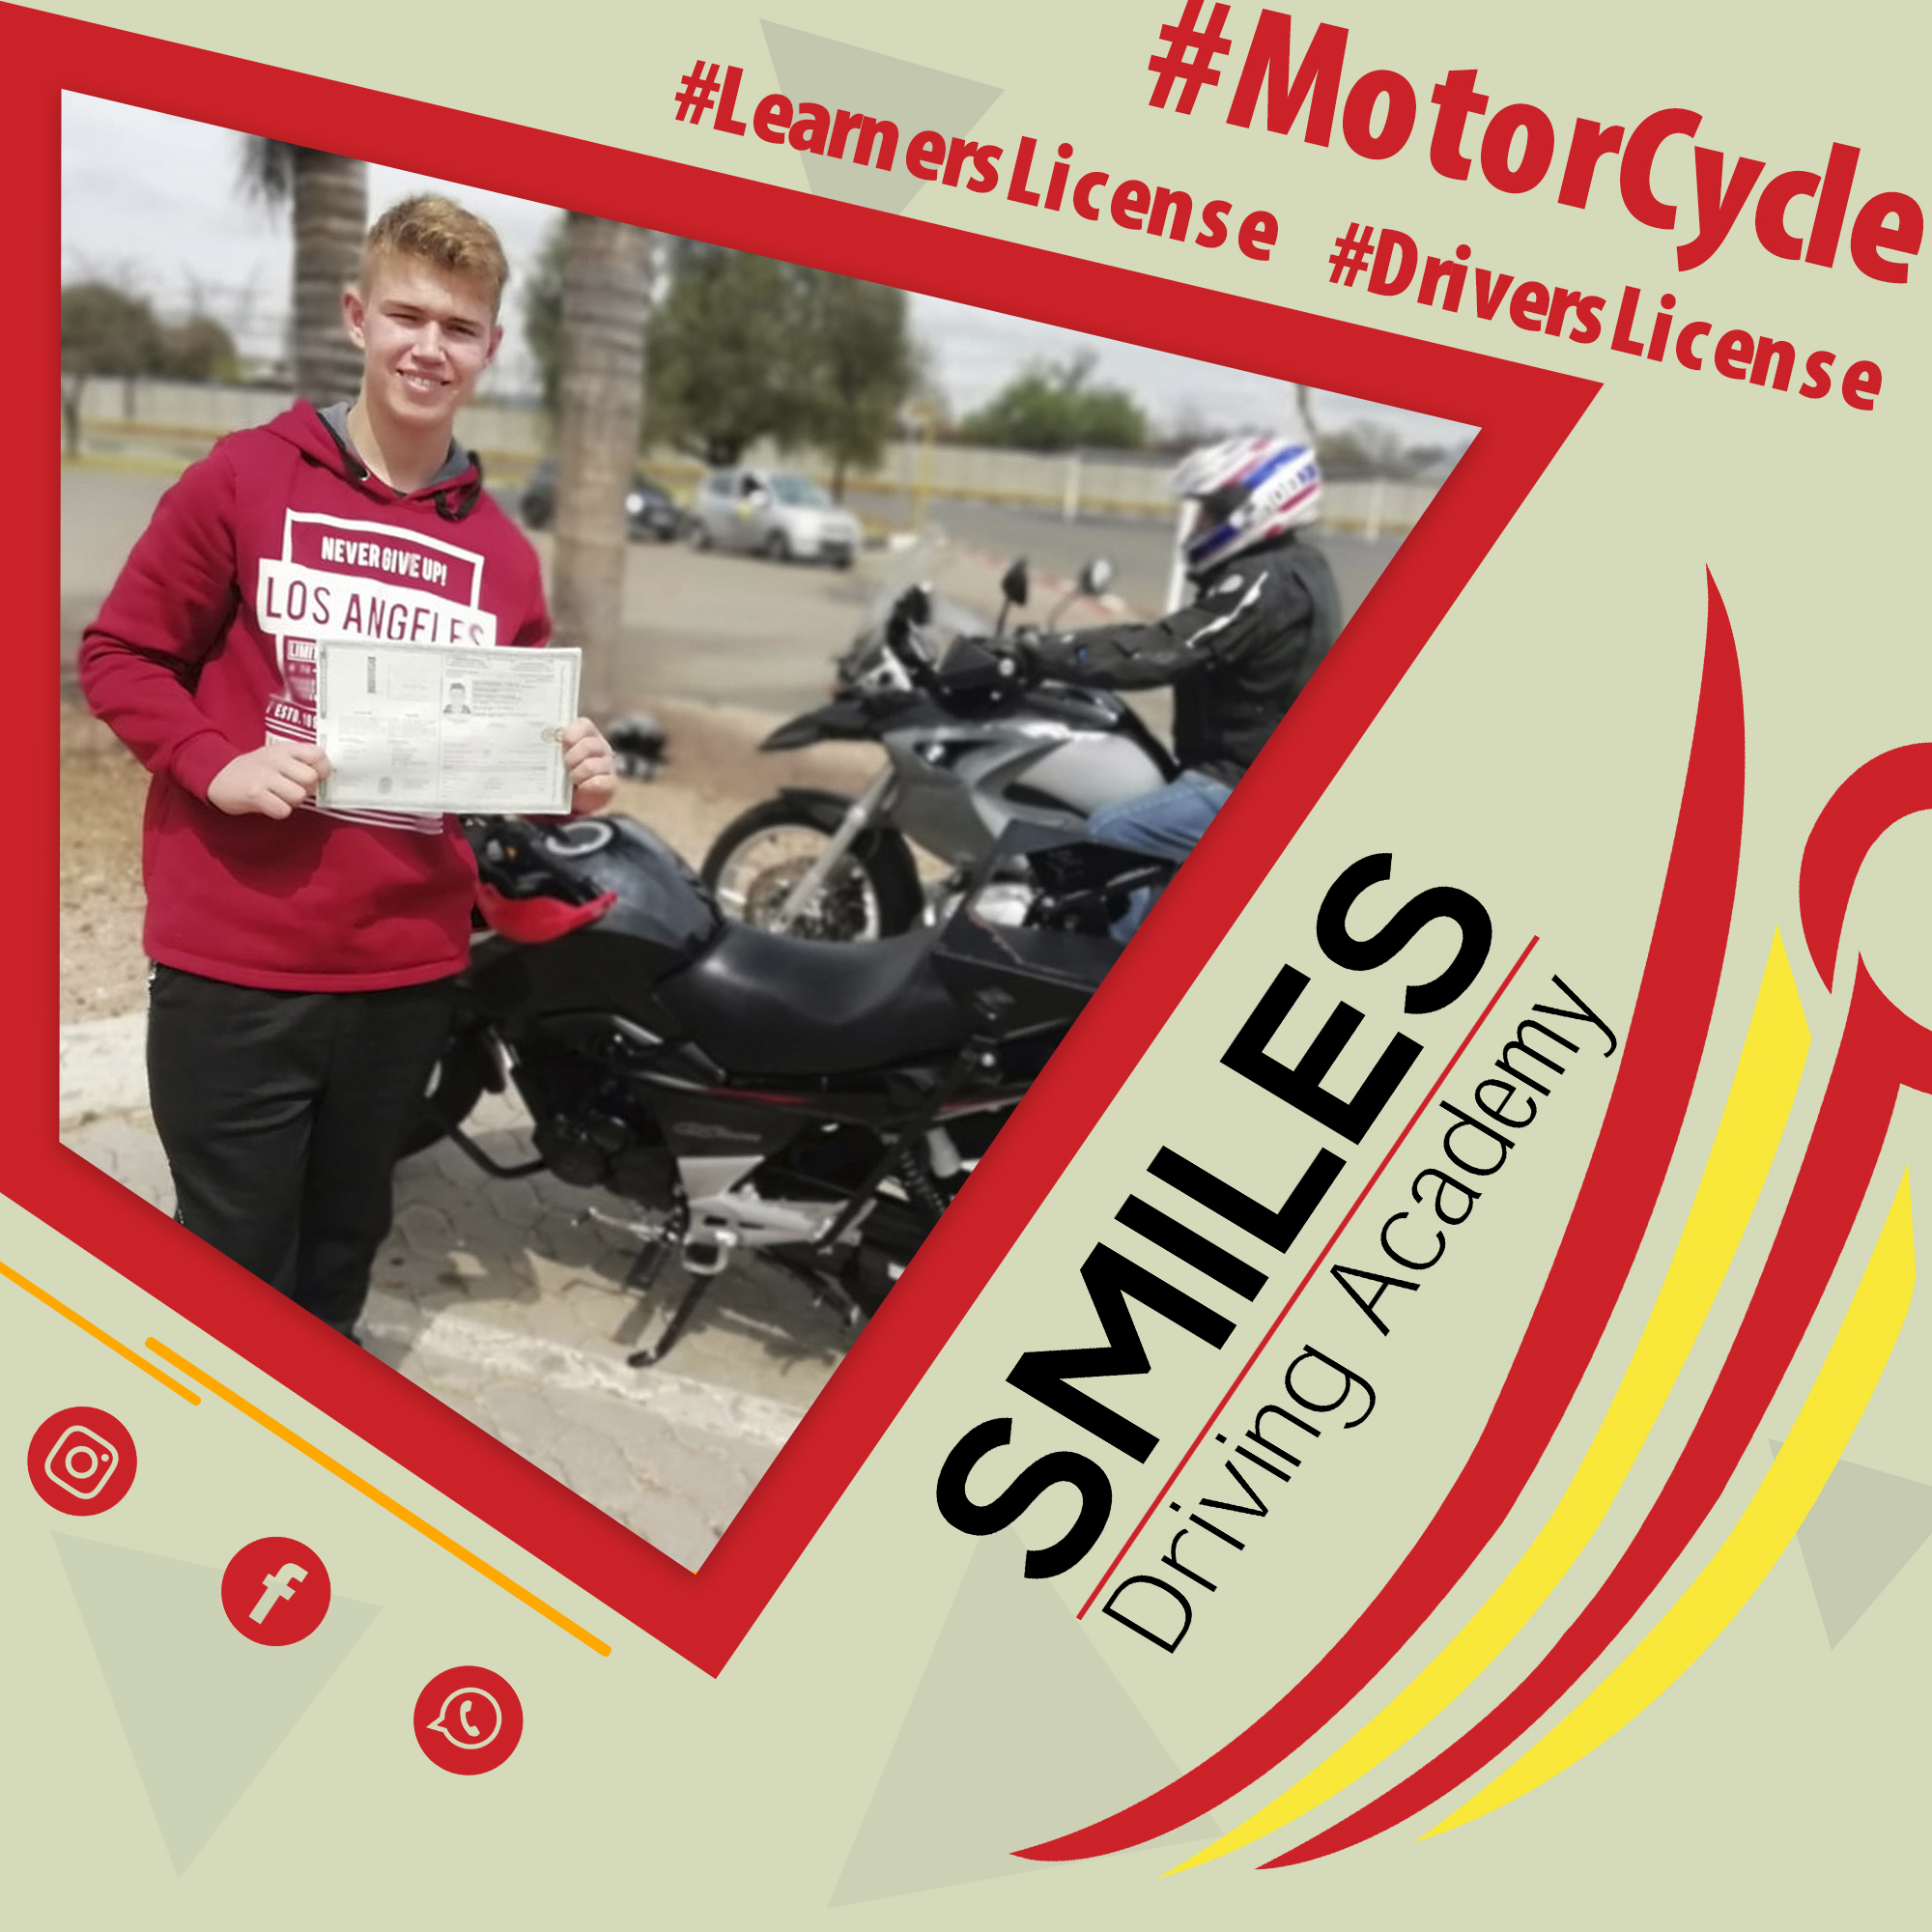 Smiles 12 March - Motorcycle Learners License